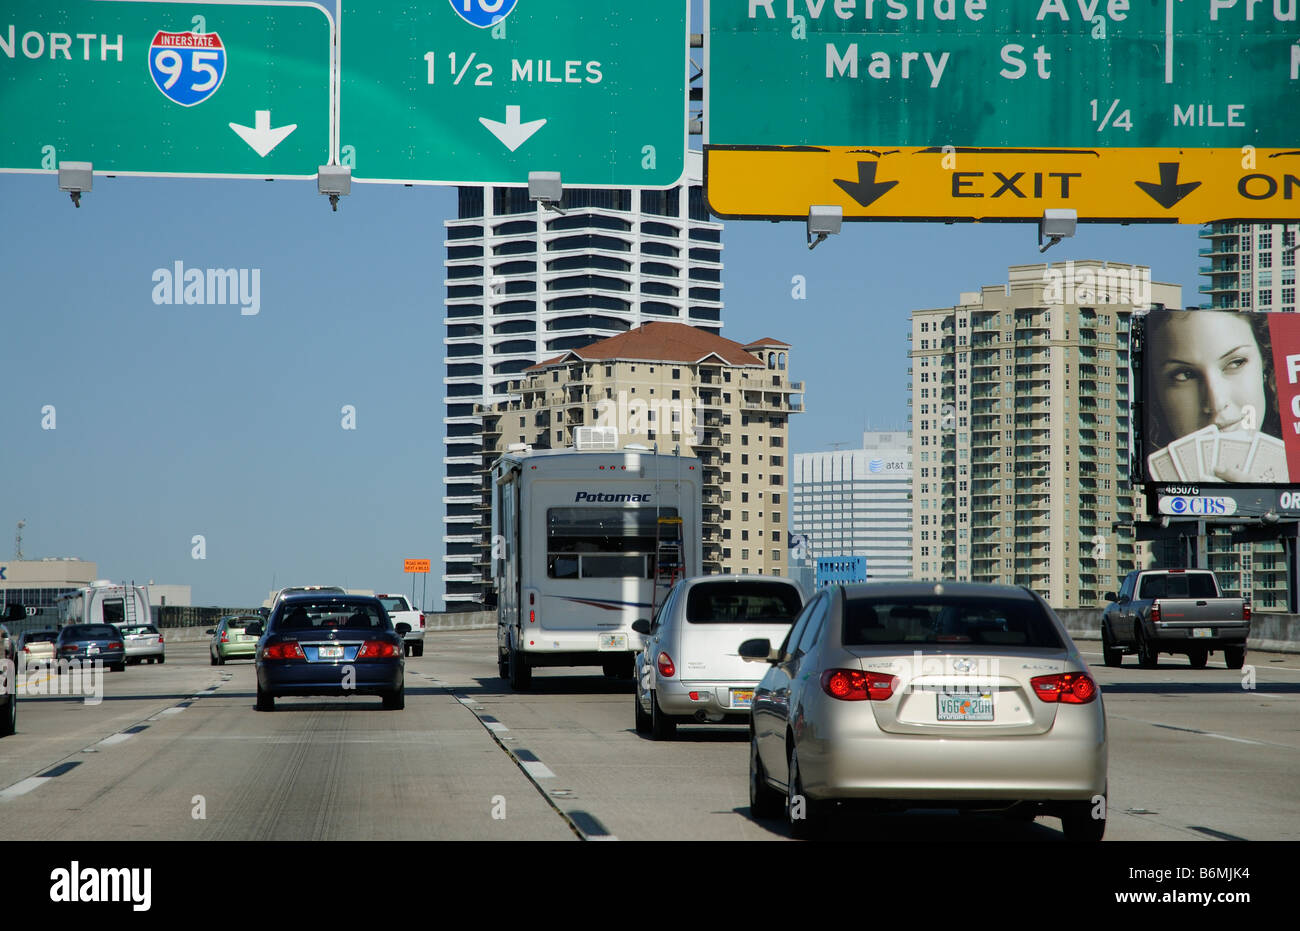 I 95 North Stock Photos & I 95 North Stock Images - Page 2 - Alamy